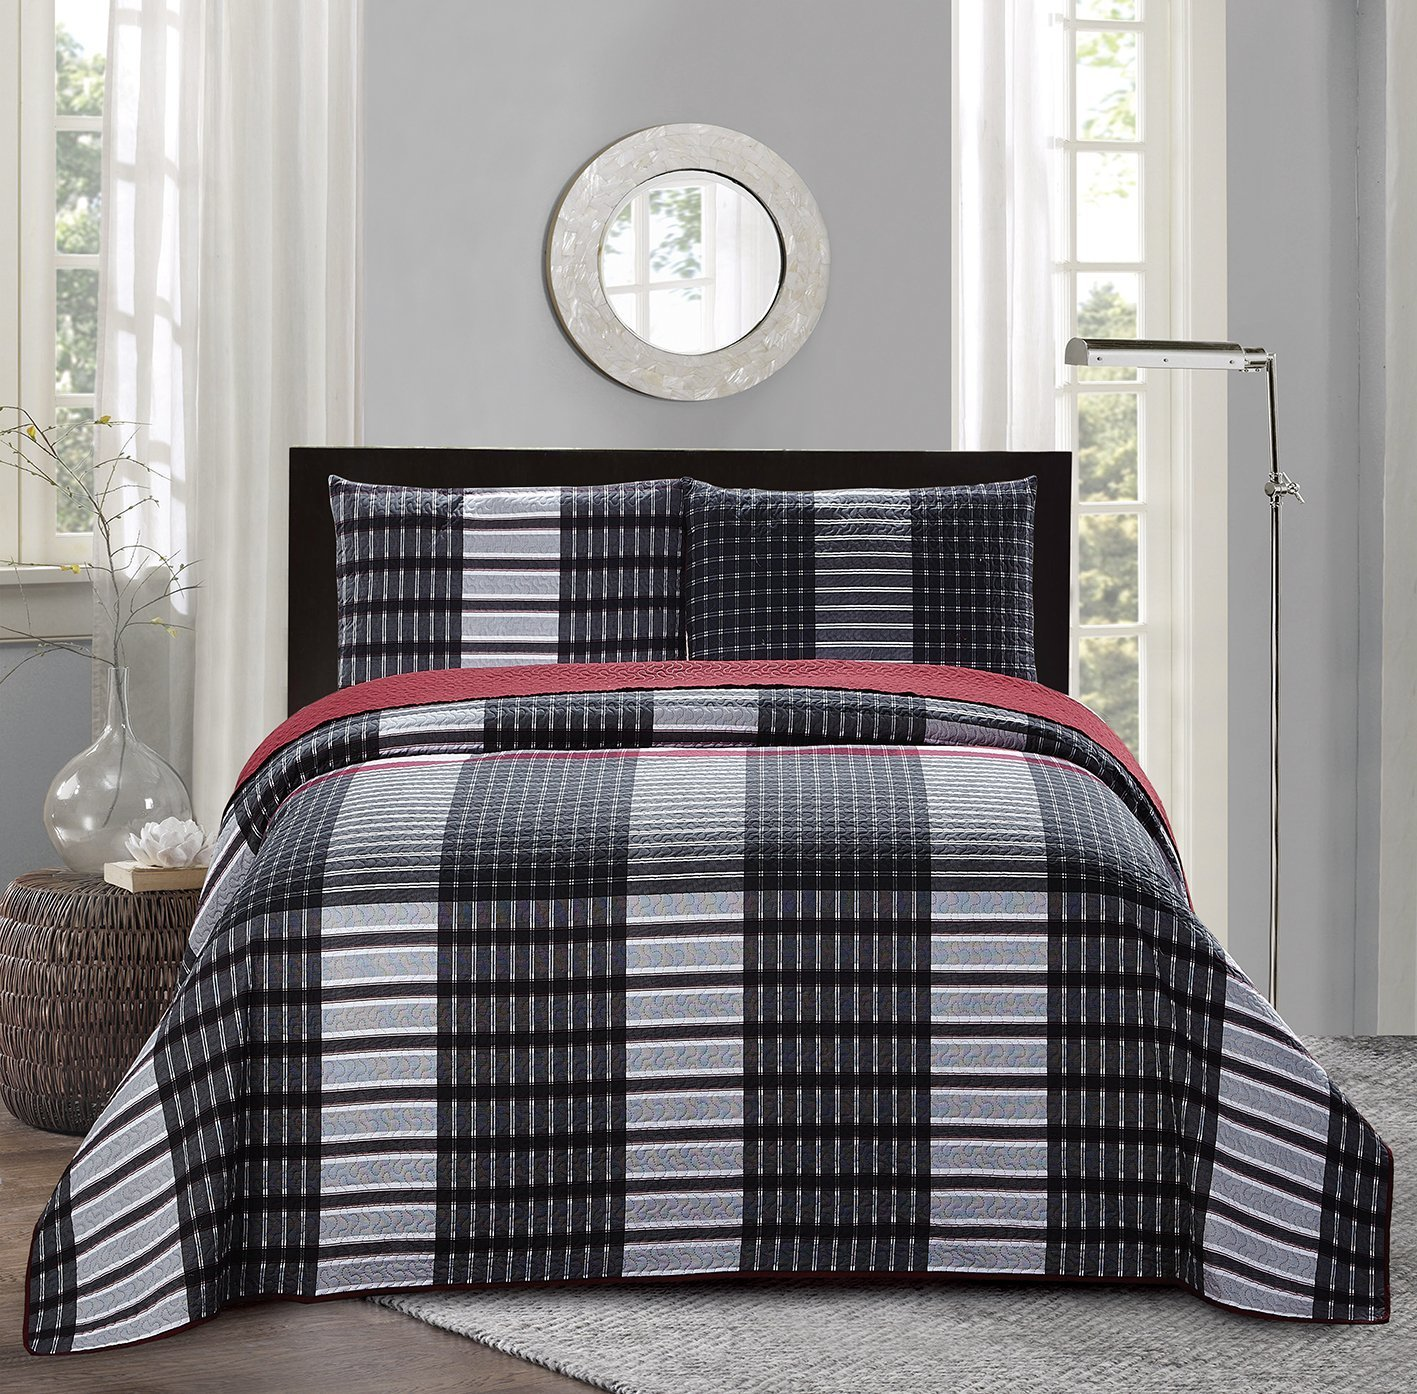 Get Quotations All American Collection New 3pc Plaid Printed Reversible Bedspread Quilt Set King Cal